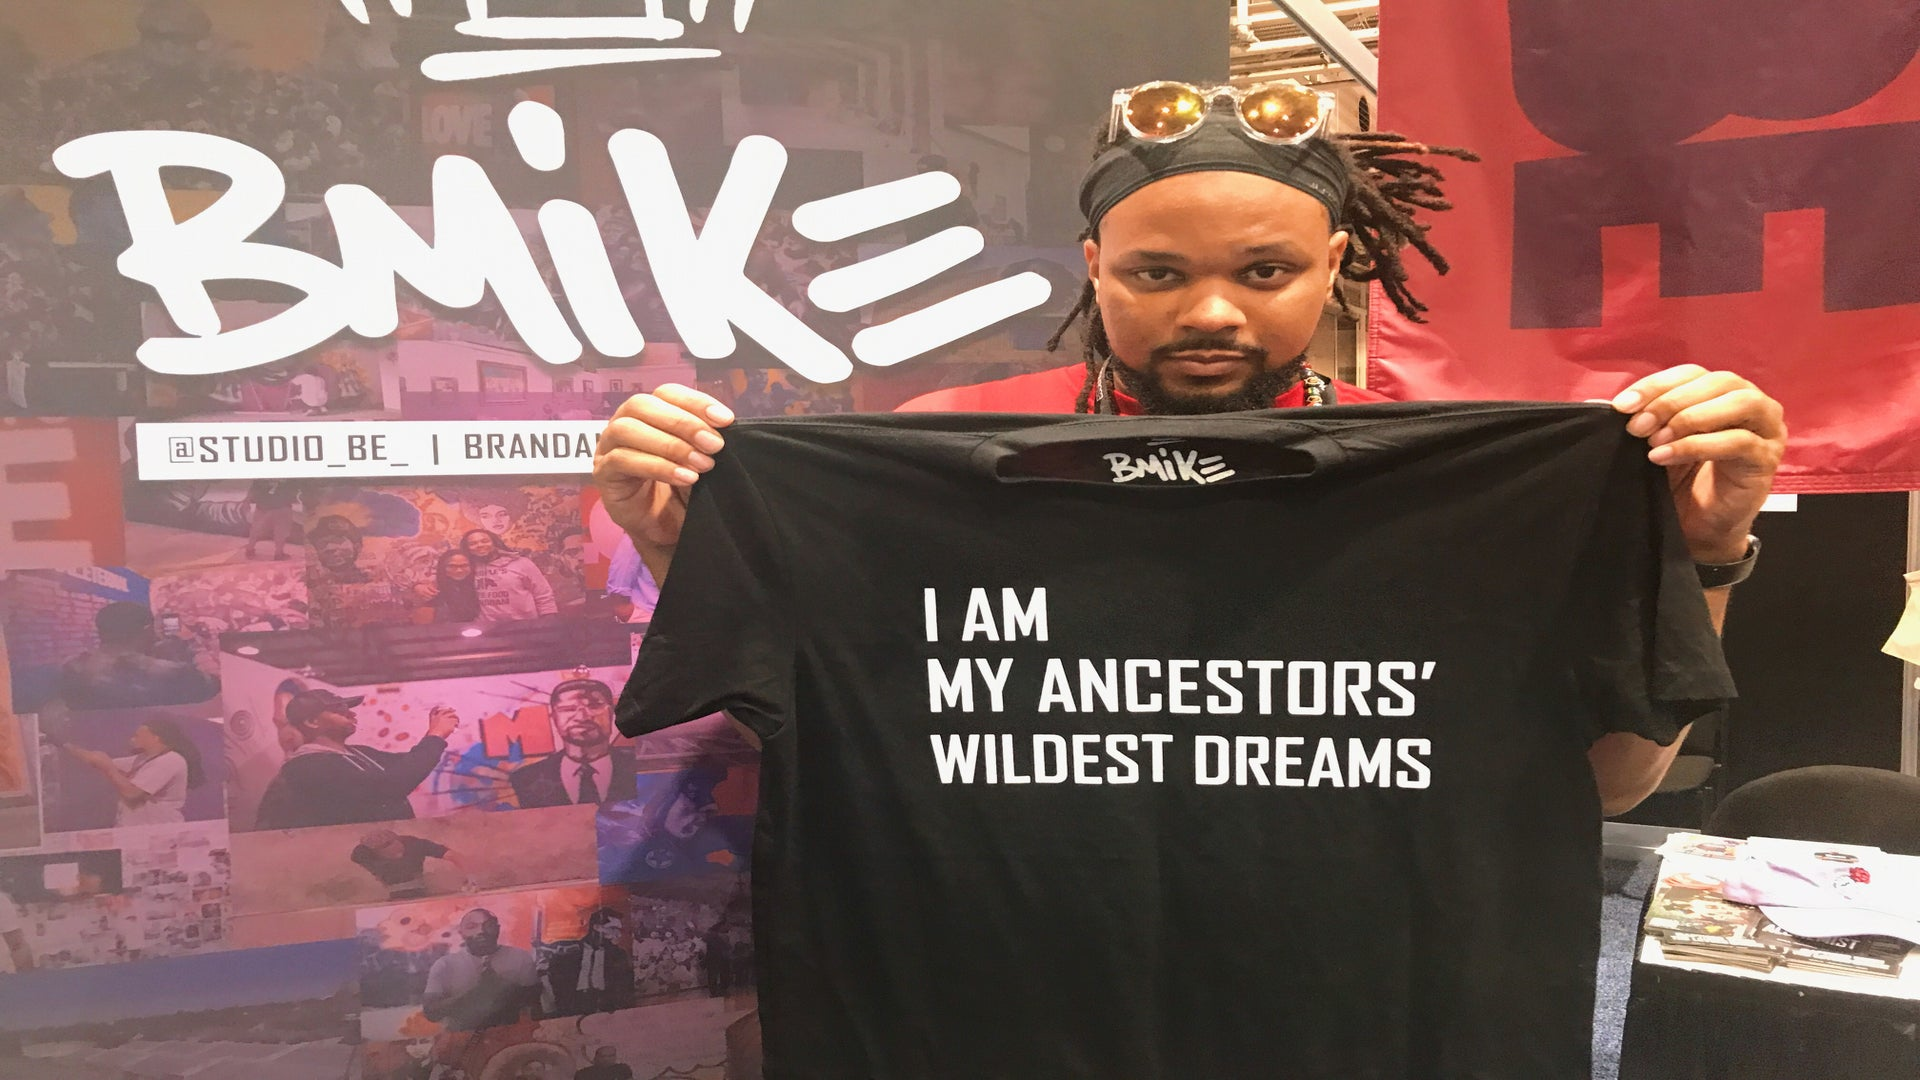 NOLA Visual Artist BMike Brings The Fight Against Injustice To Life Through His Powerful Paintings At ESSENCE Fest